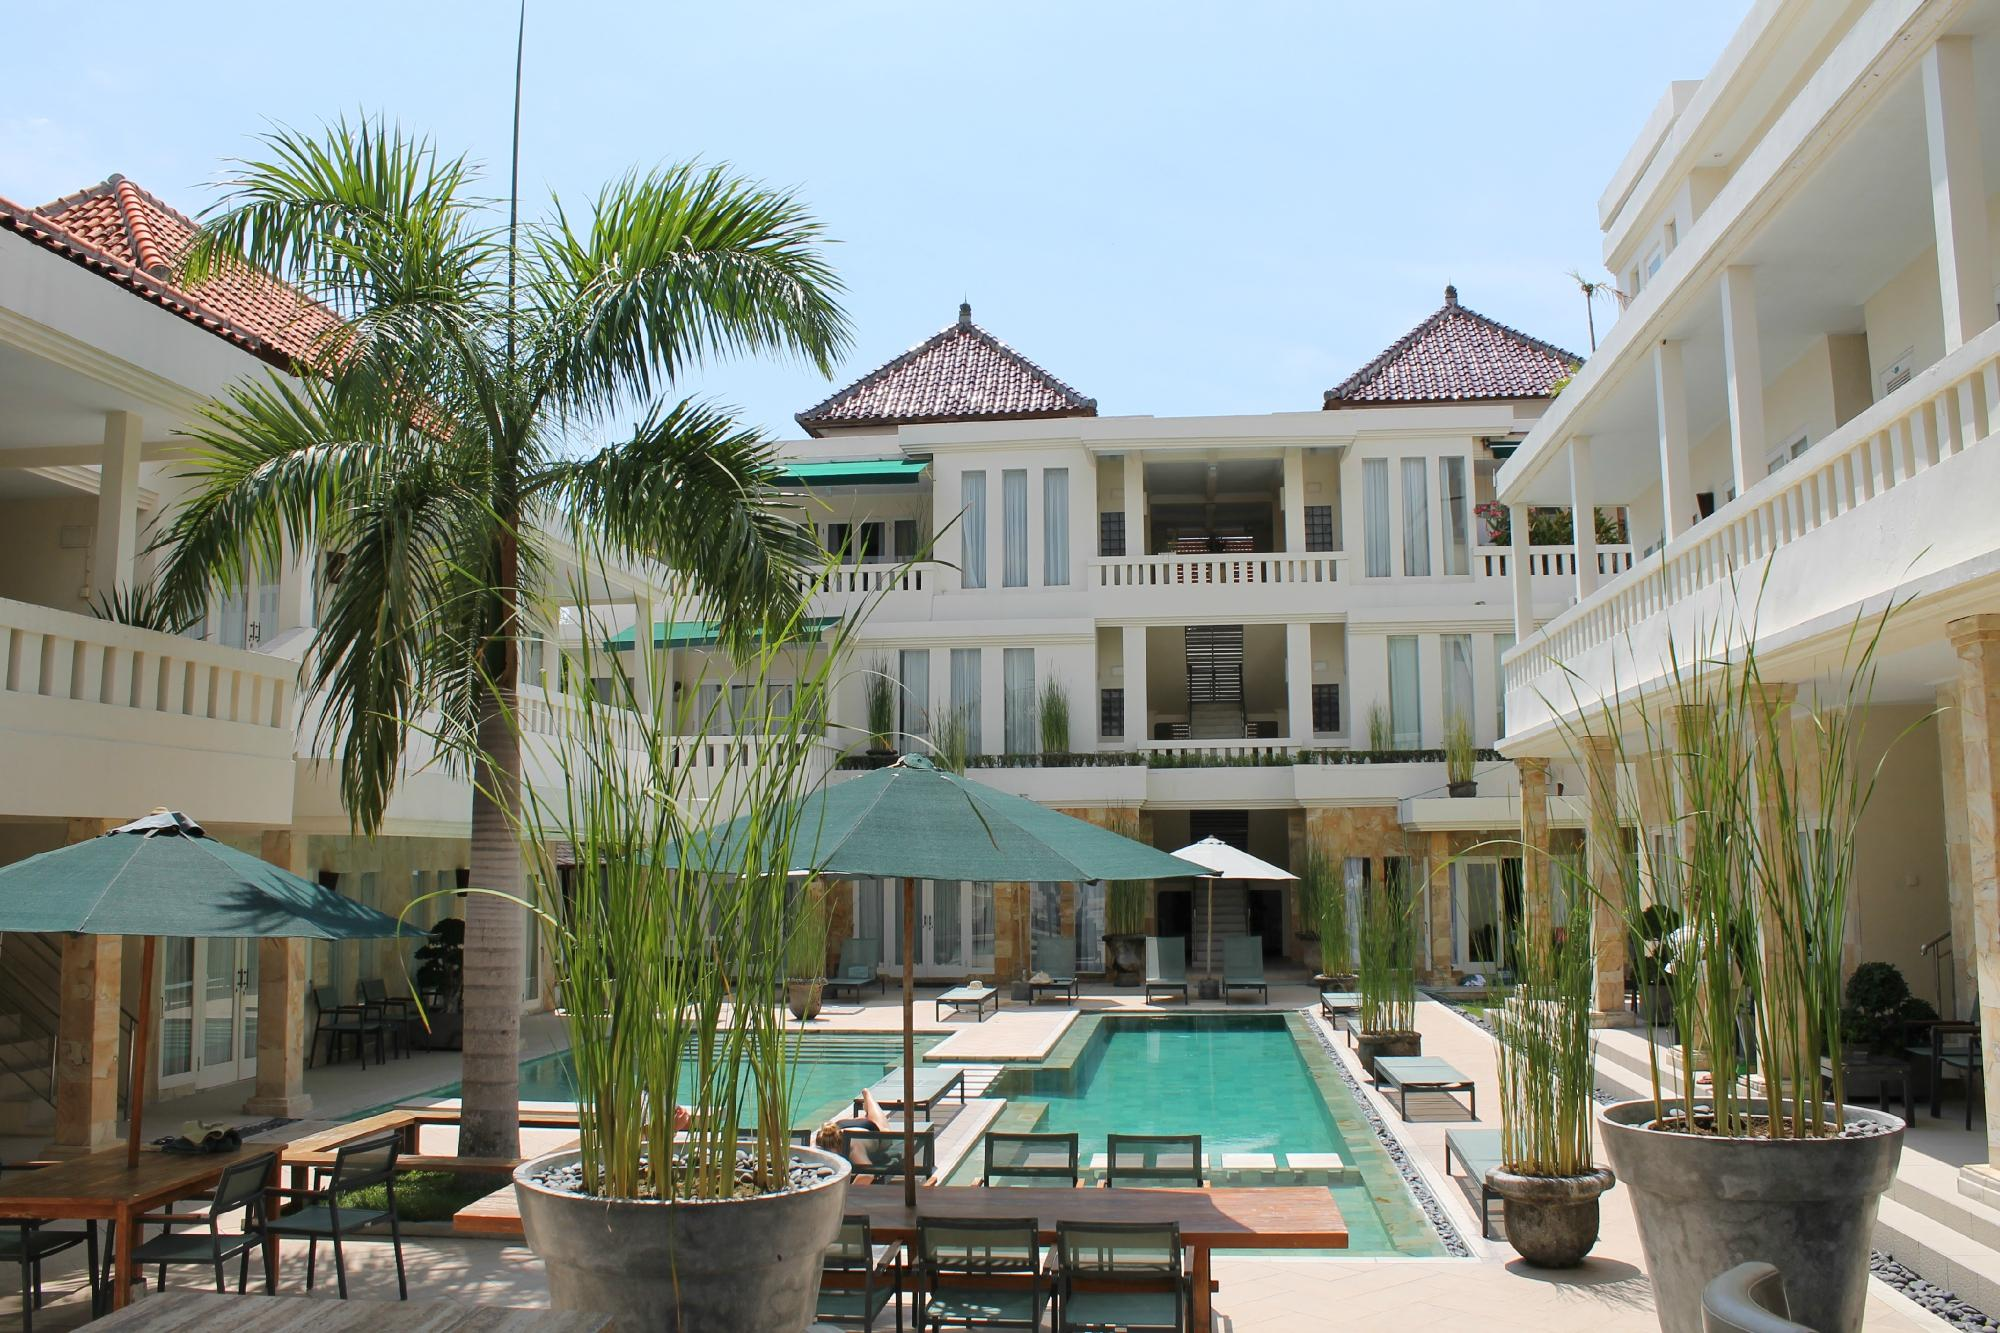 Bali Court Hotel and Apartments